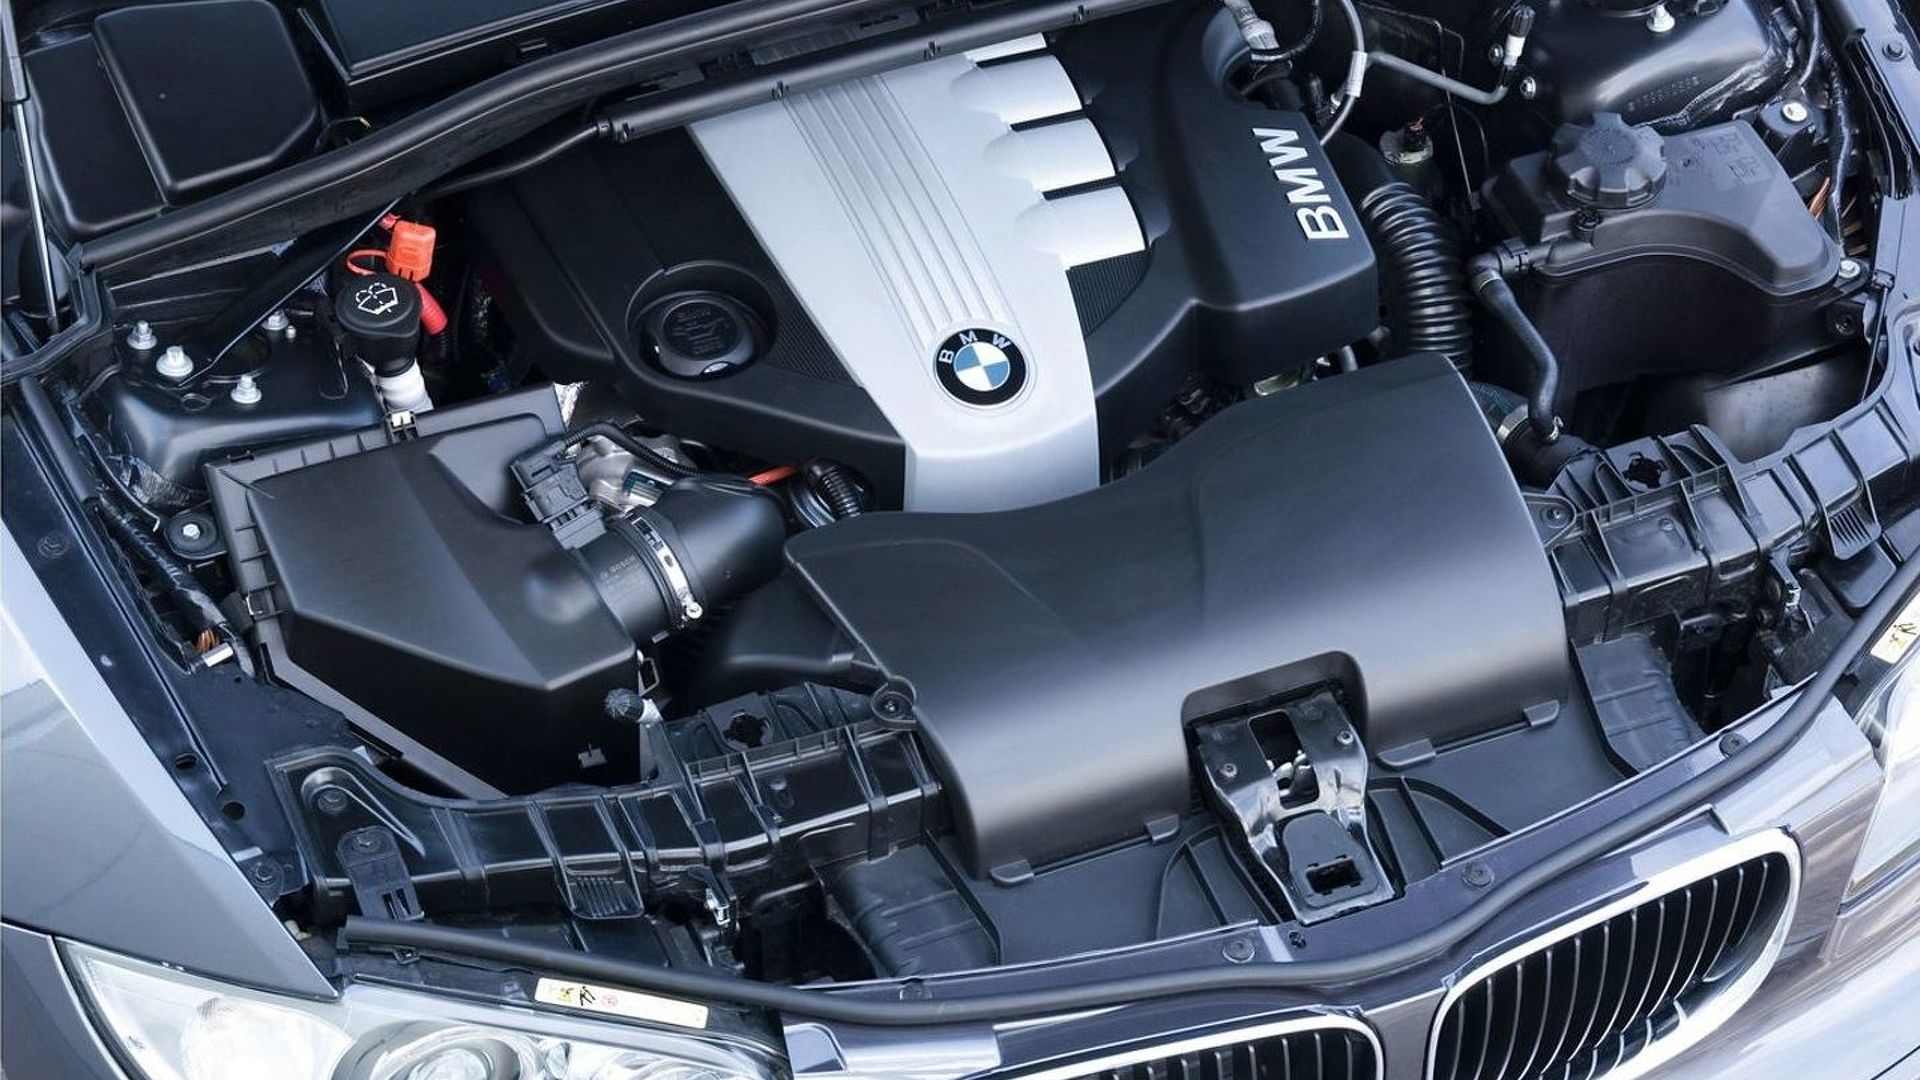 rumours: next gen bmw 1-series and 3-series to receive turbo 3